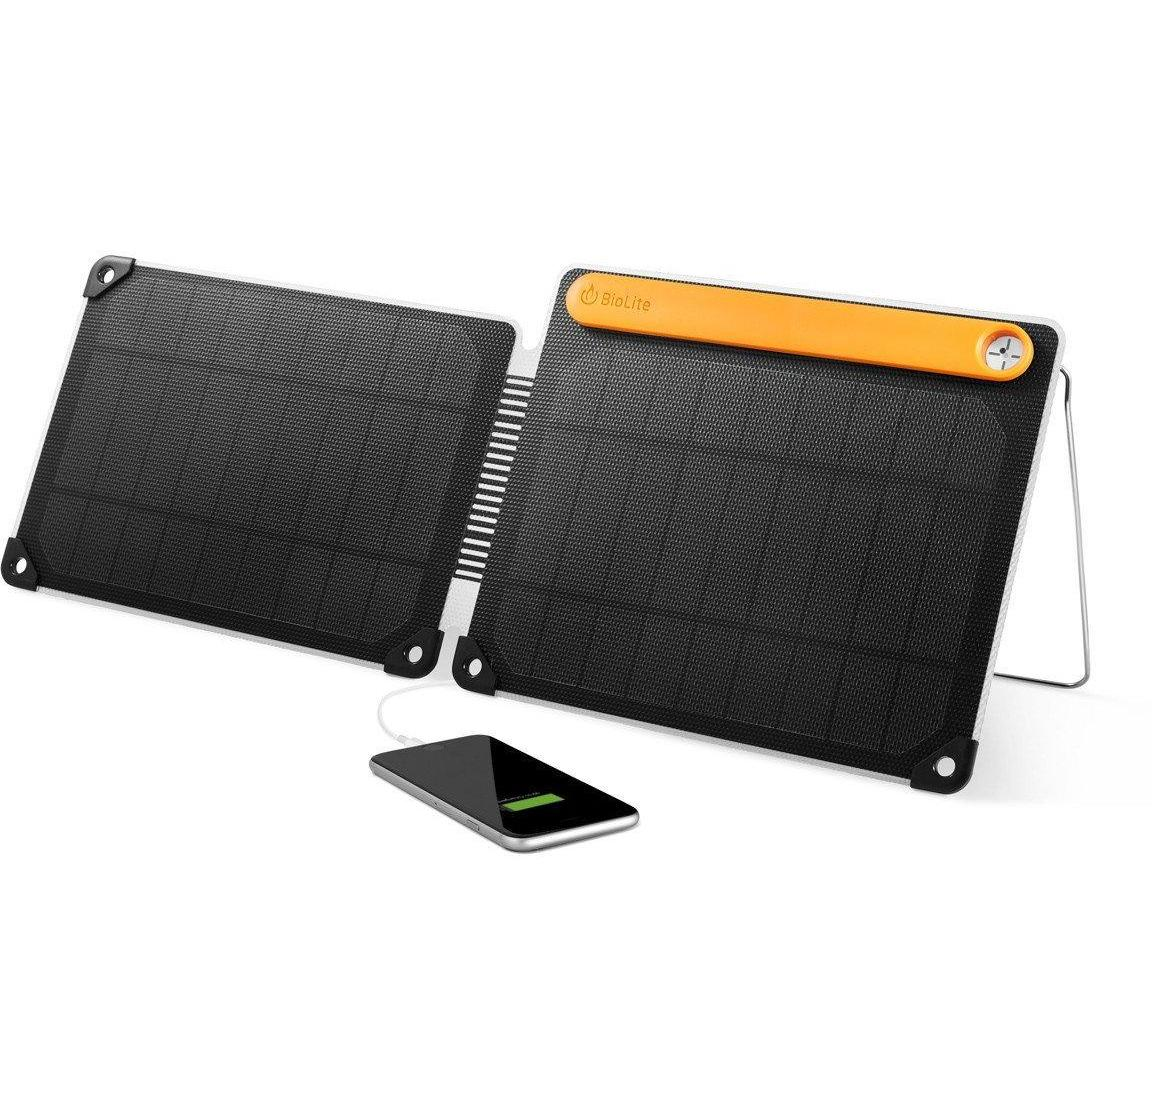 BioLite Solar Panel 10+ Charger with Charge Input and USB Outputs